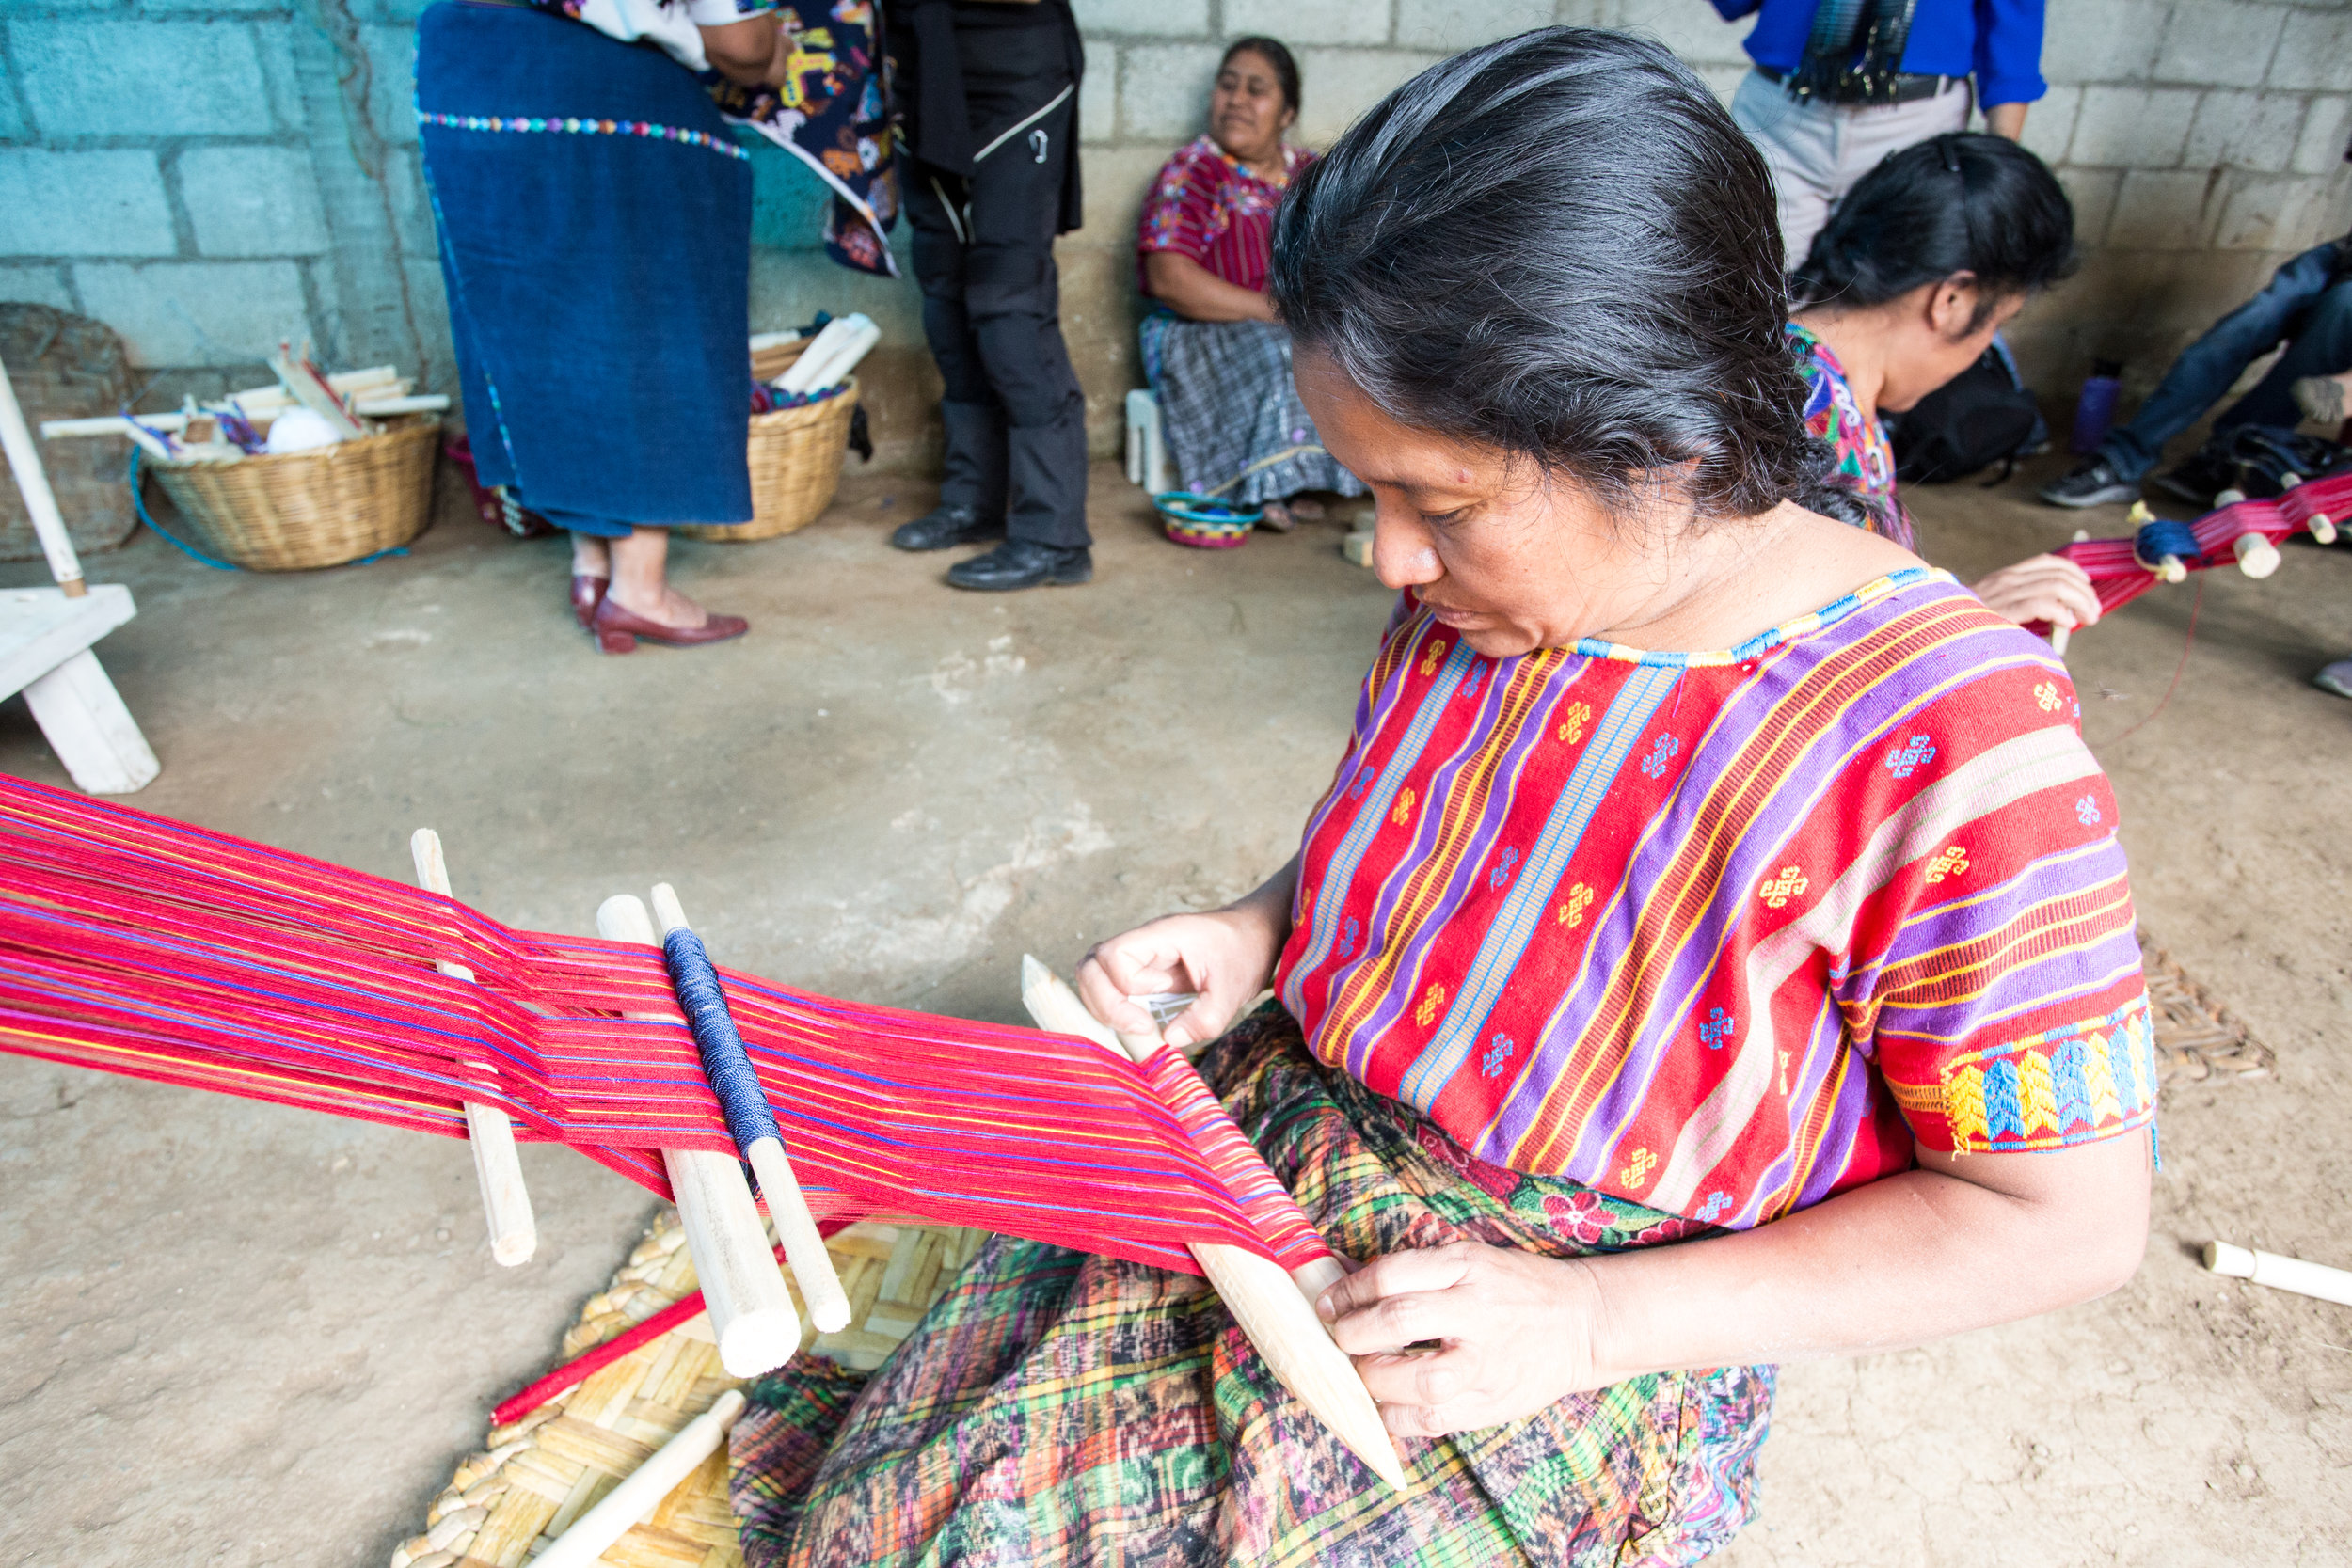 Guatemala: Women of weaving - October 25-31, 2020